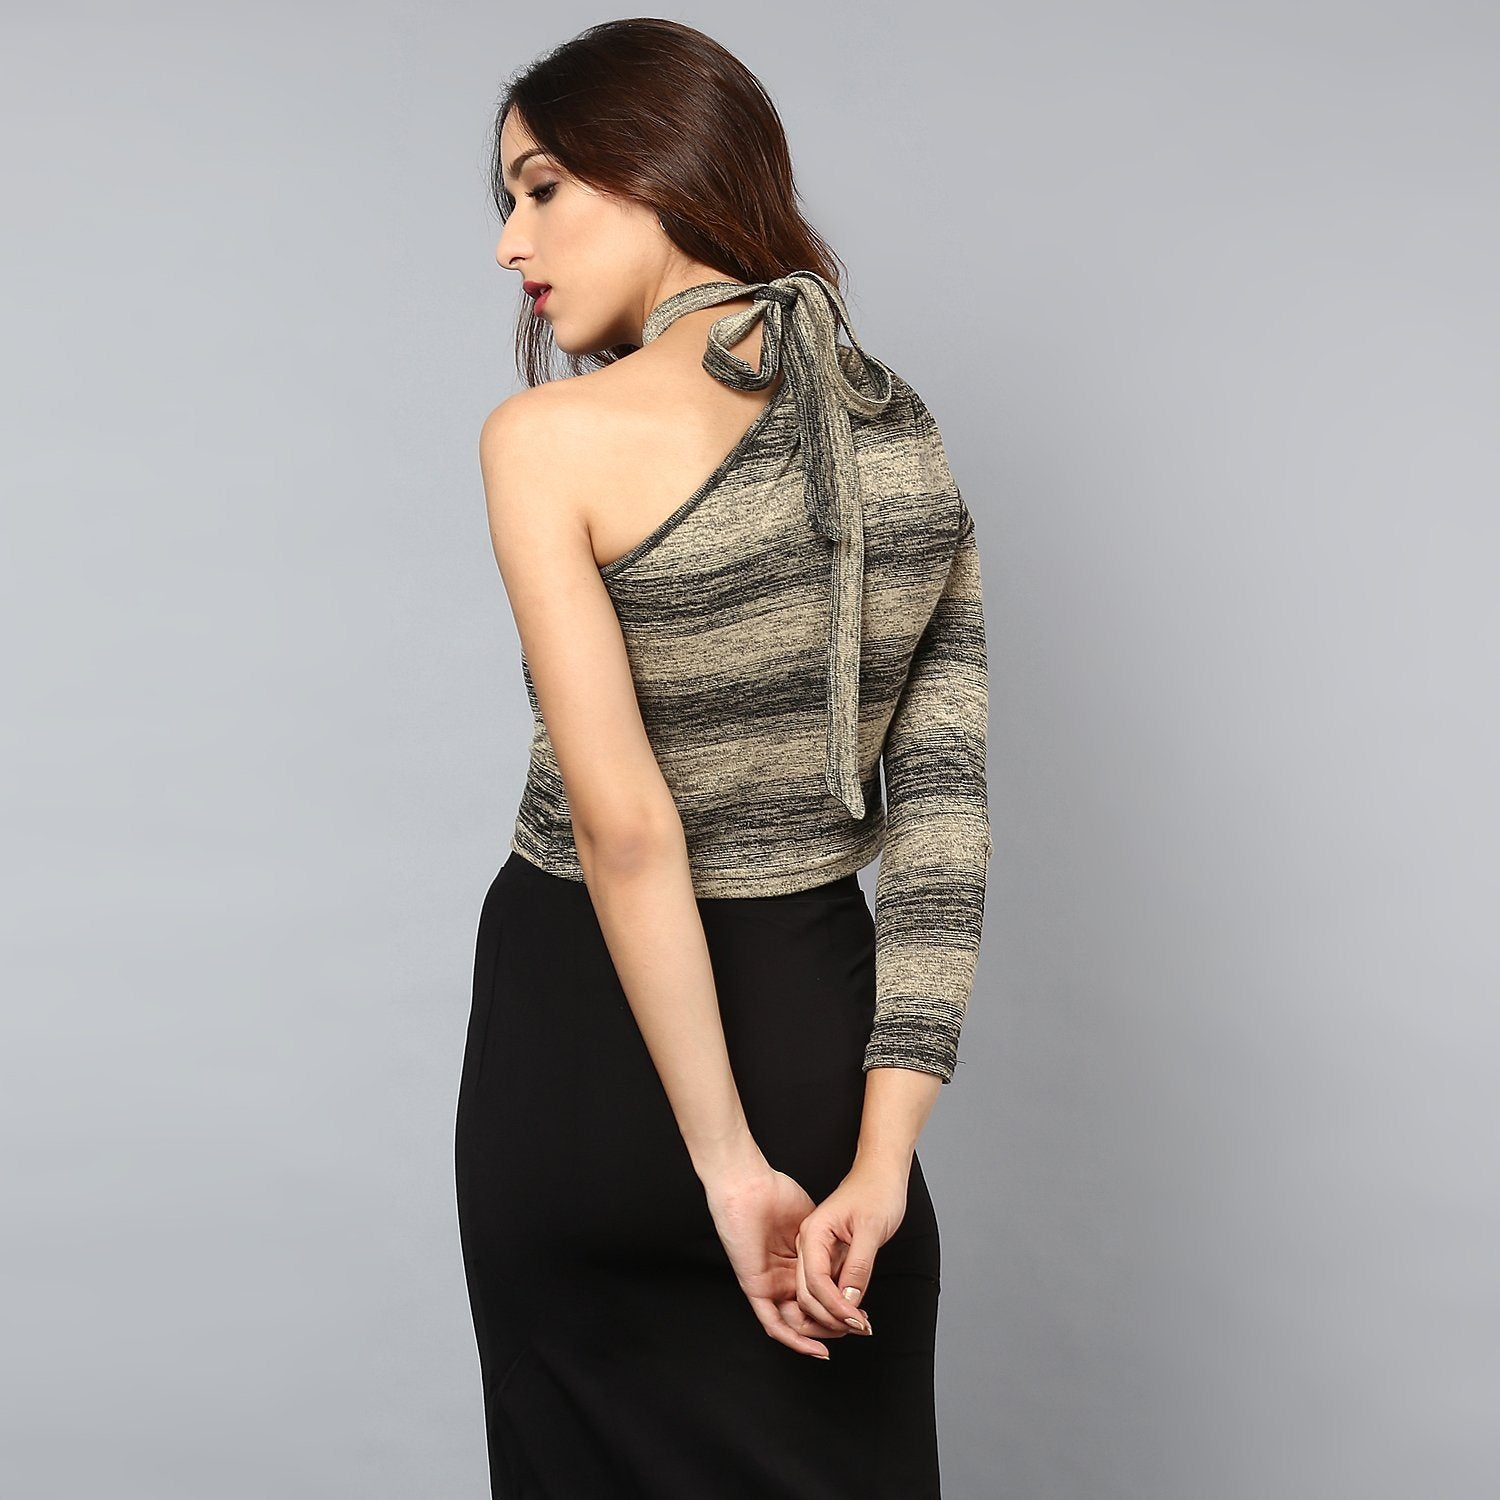 be2949750031e One Shoulder Striped Crop top with Tie-up neck – Benoit